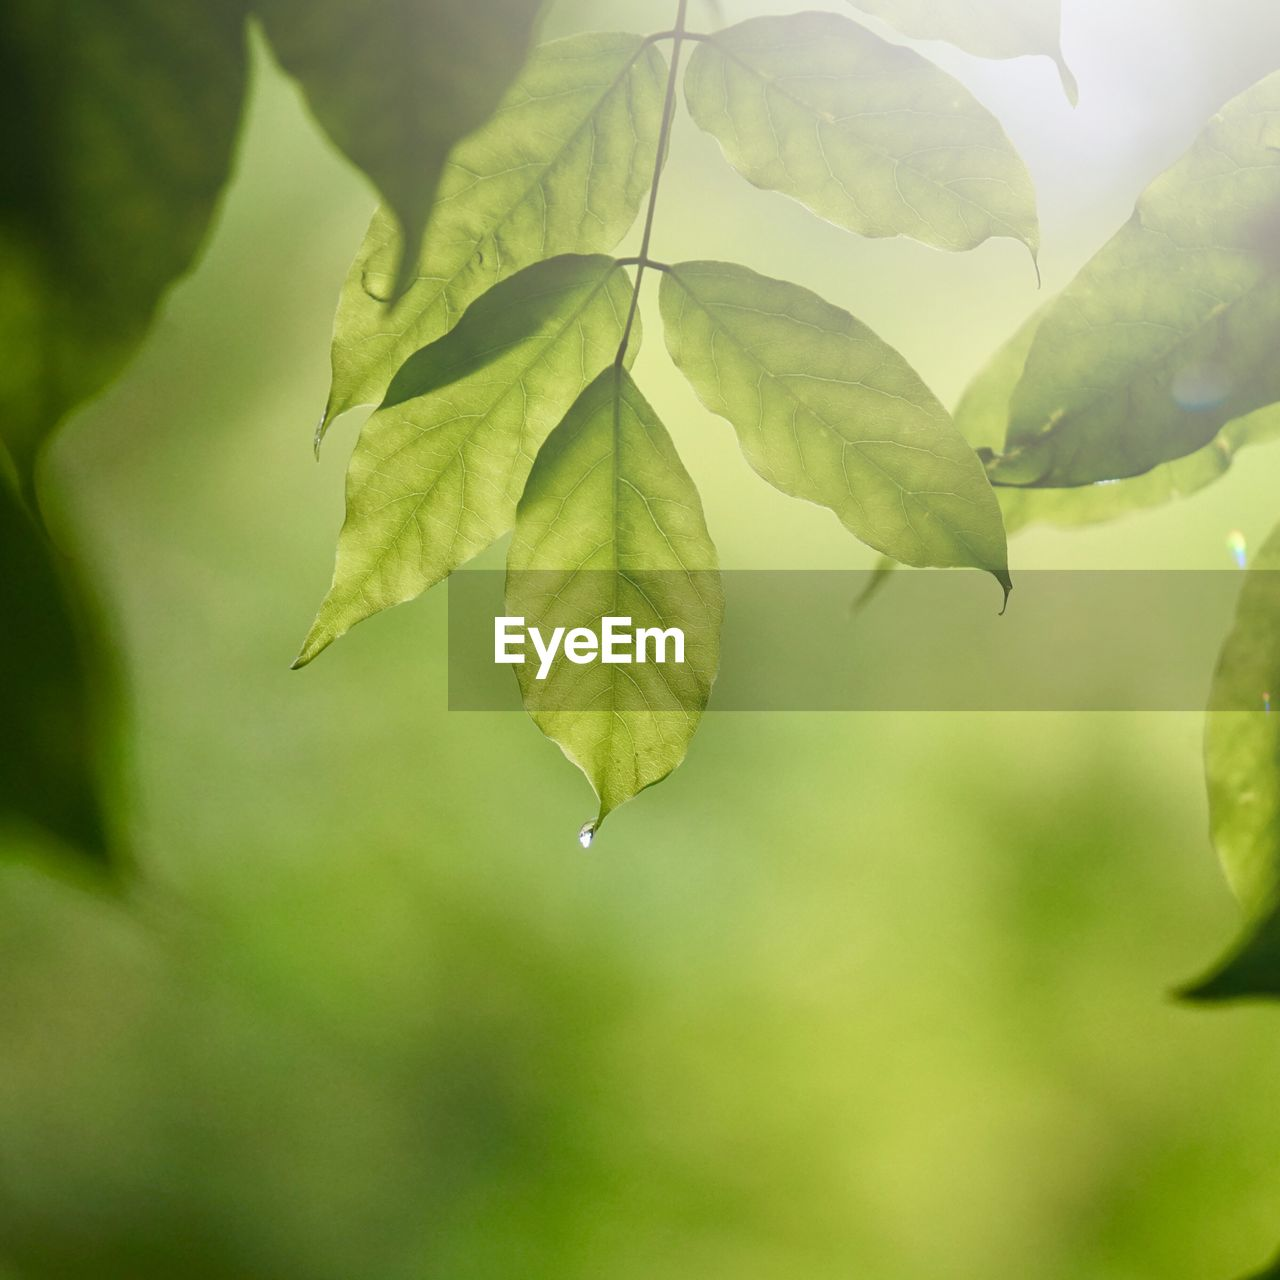 leaf, plant part, growth, plant, green color, close-up, beauty in nature, day, no people, focus on foreground, nature, tranquility, selective focus, outdoors, freshness, leaves, vulnerability, fragility, plant stem, water